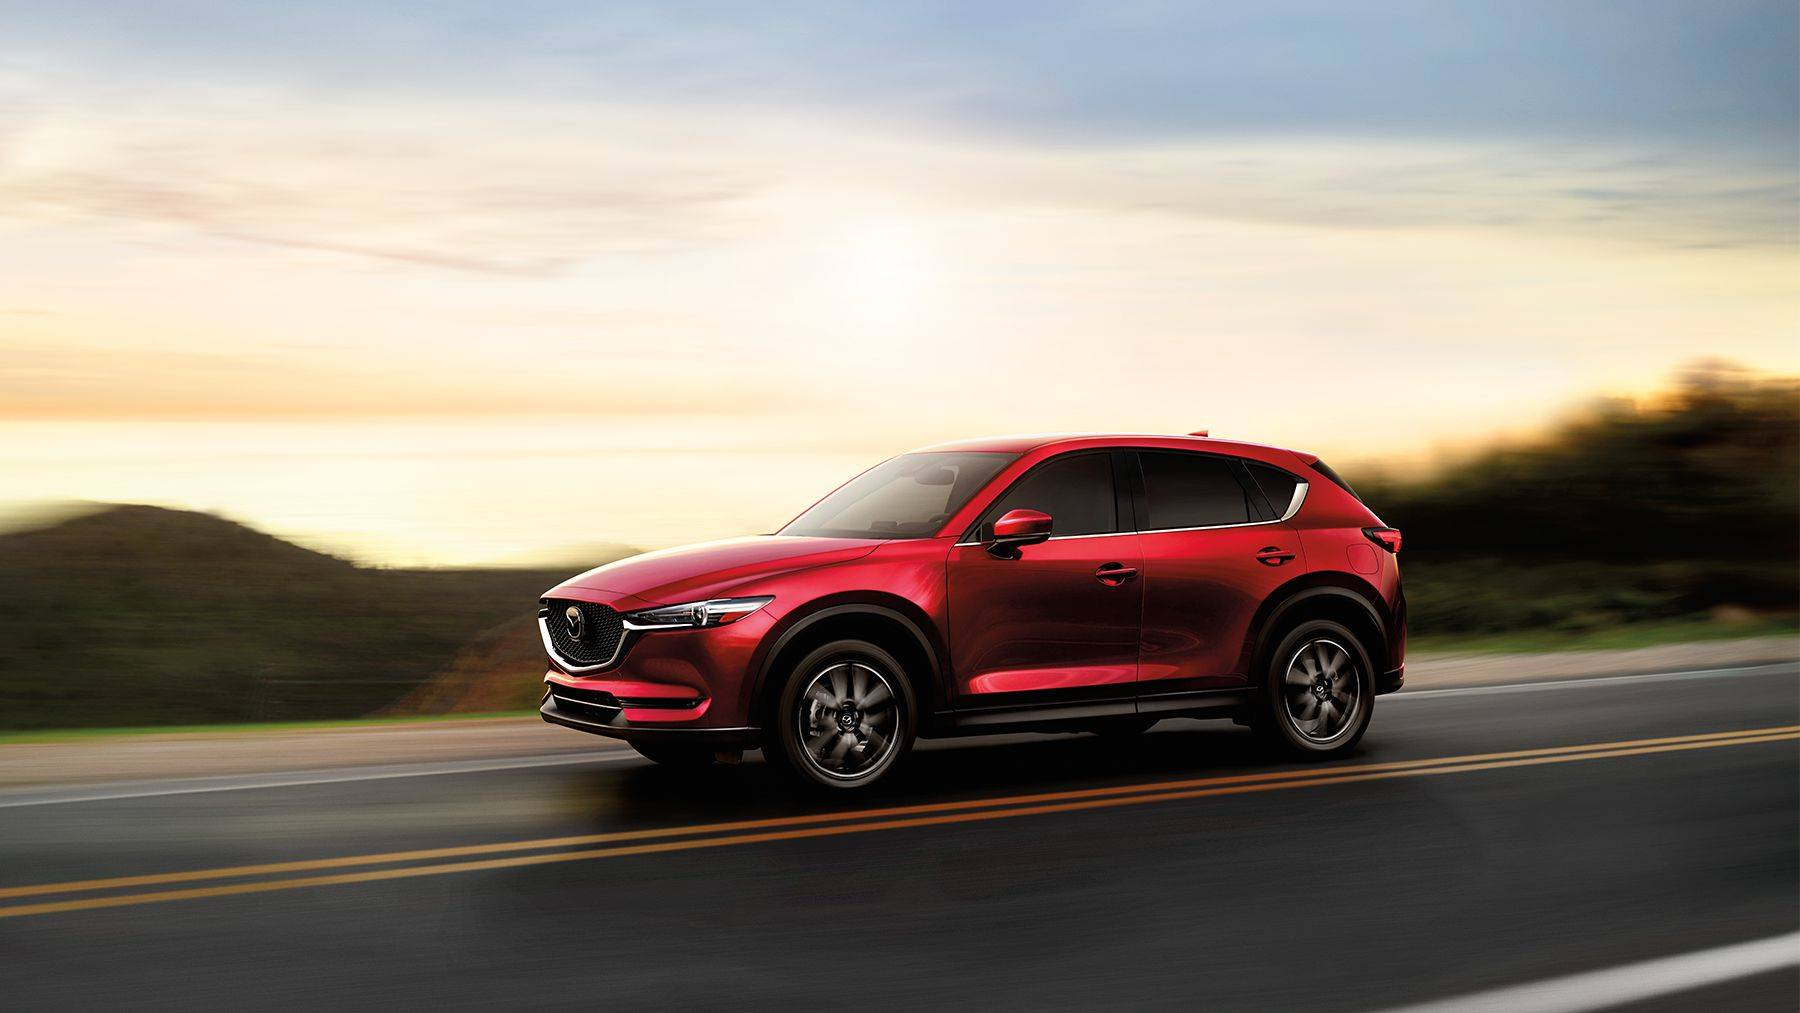 2018 Mazda CX-5 for Sale near Folsom, CA